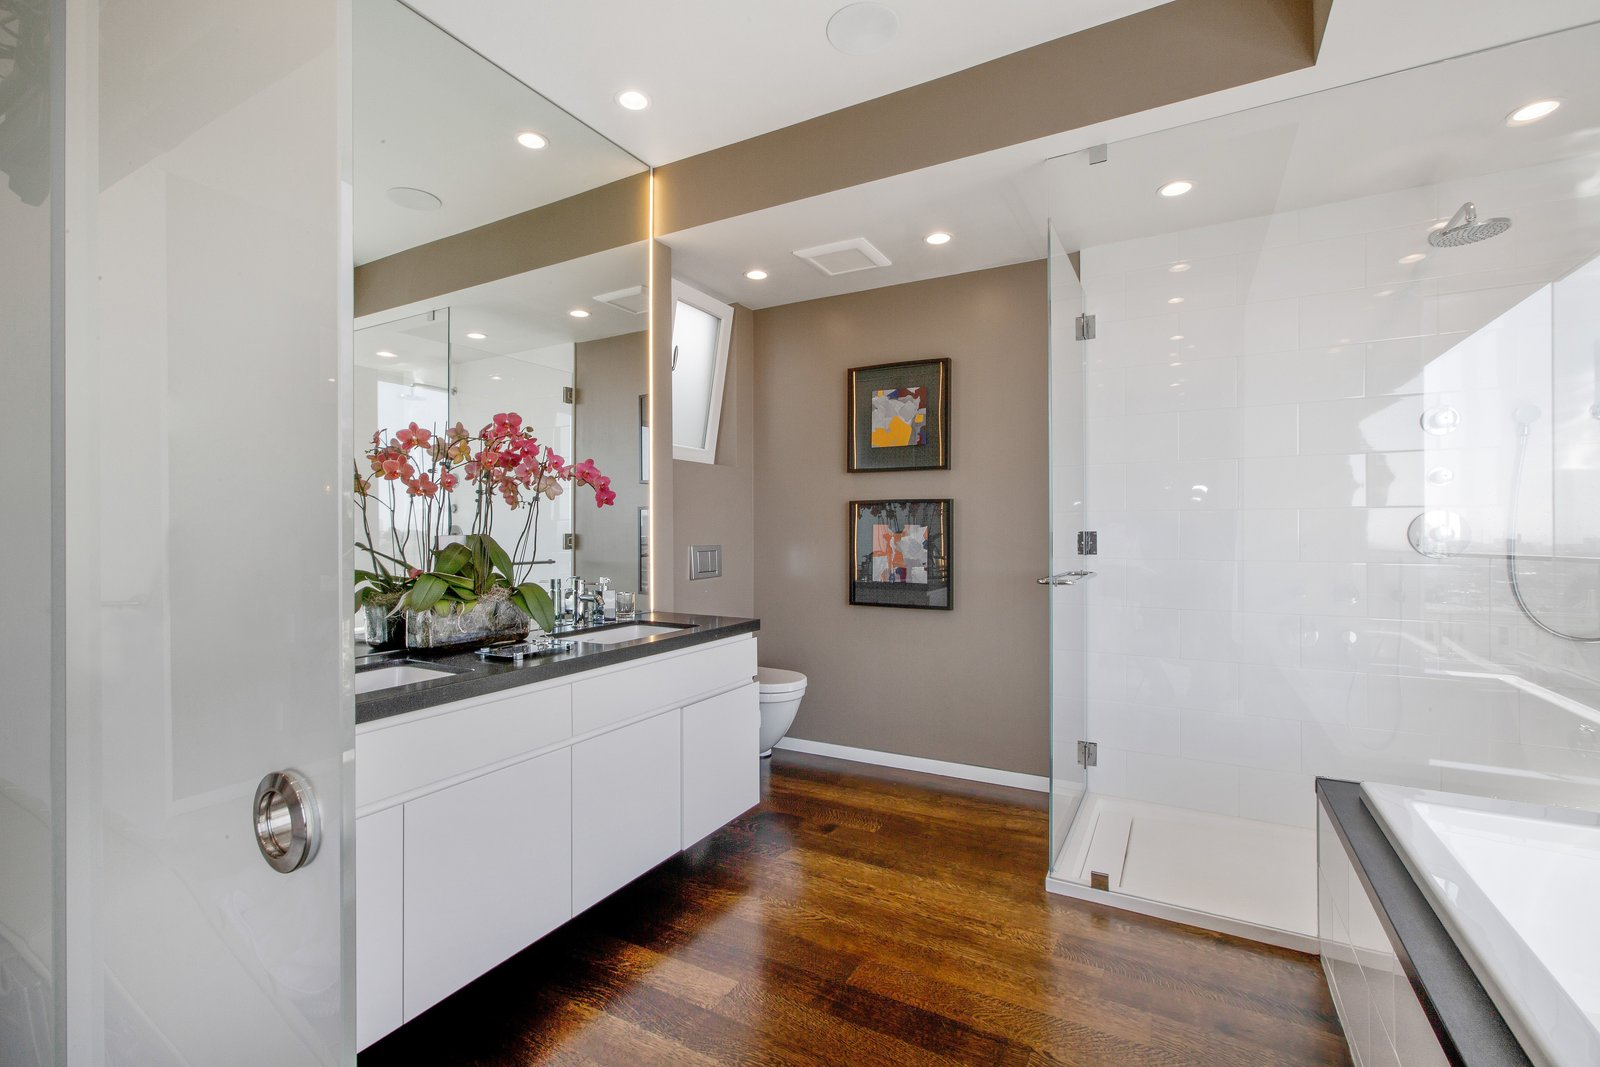 Bath Room, Granite Counter, Undermount Sink, Medium Hardwood Floor, Enclosed Shower, Full Shower, Drop In Tub, Ceiling Lighting, and One Piece Toilet  LEED Platinum House in SF by DNM Architecture